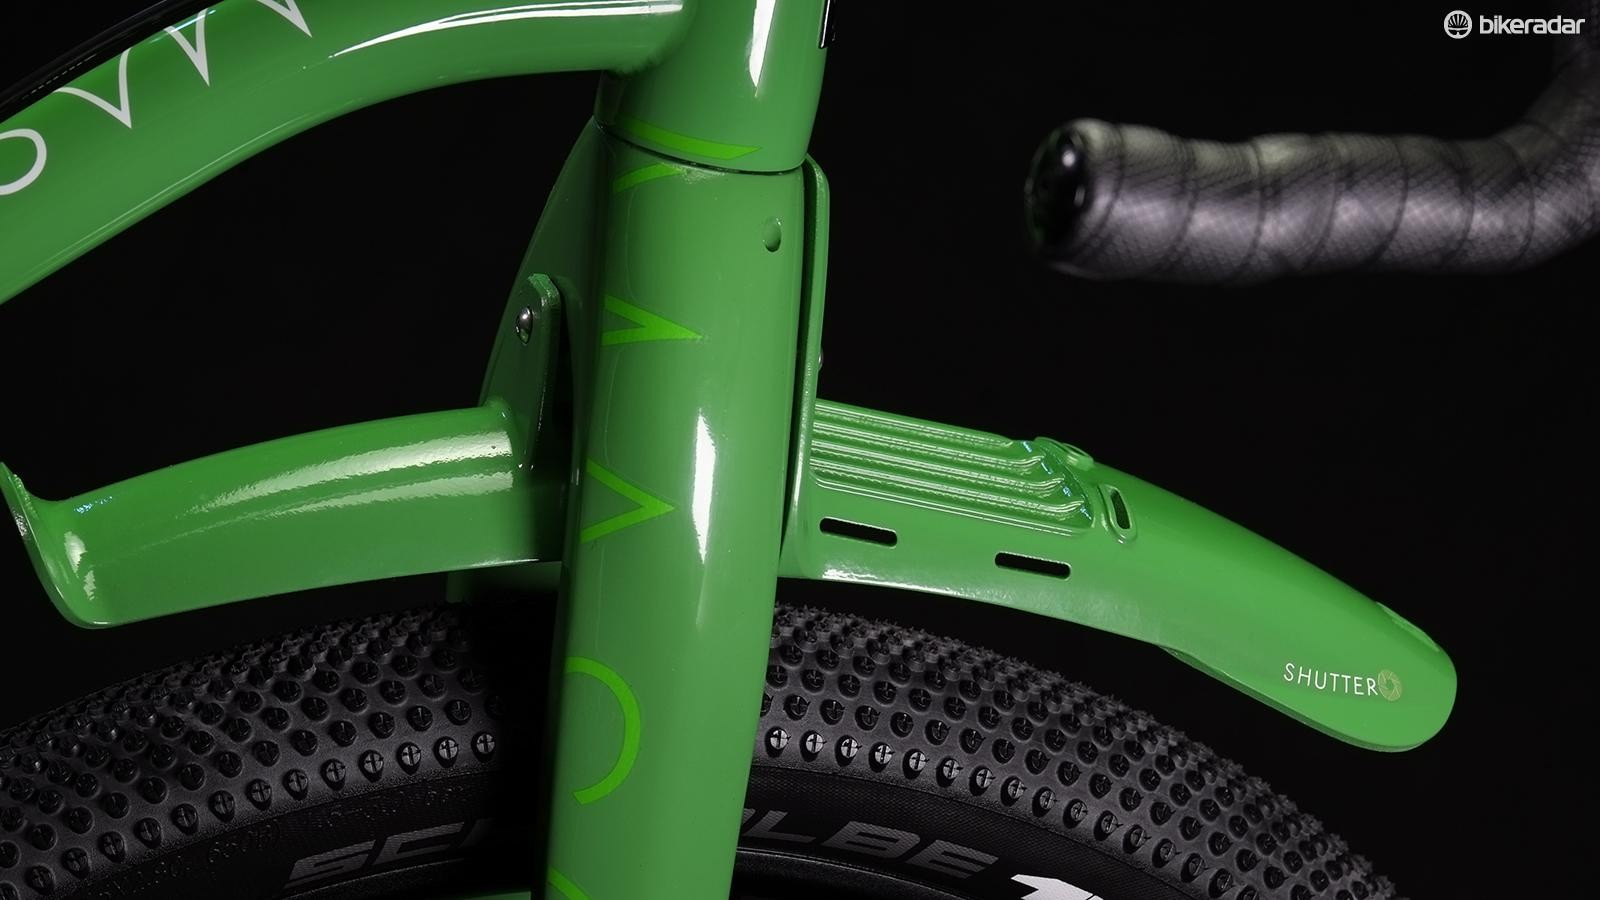 Mason's InSearchOf has a proprietary, load-bearing front mudguard/fender